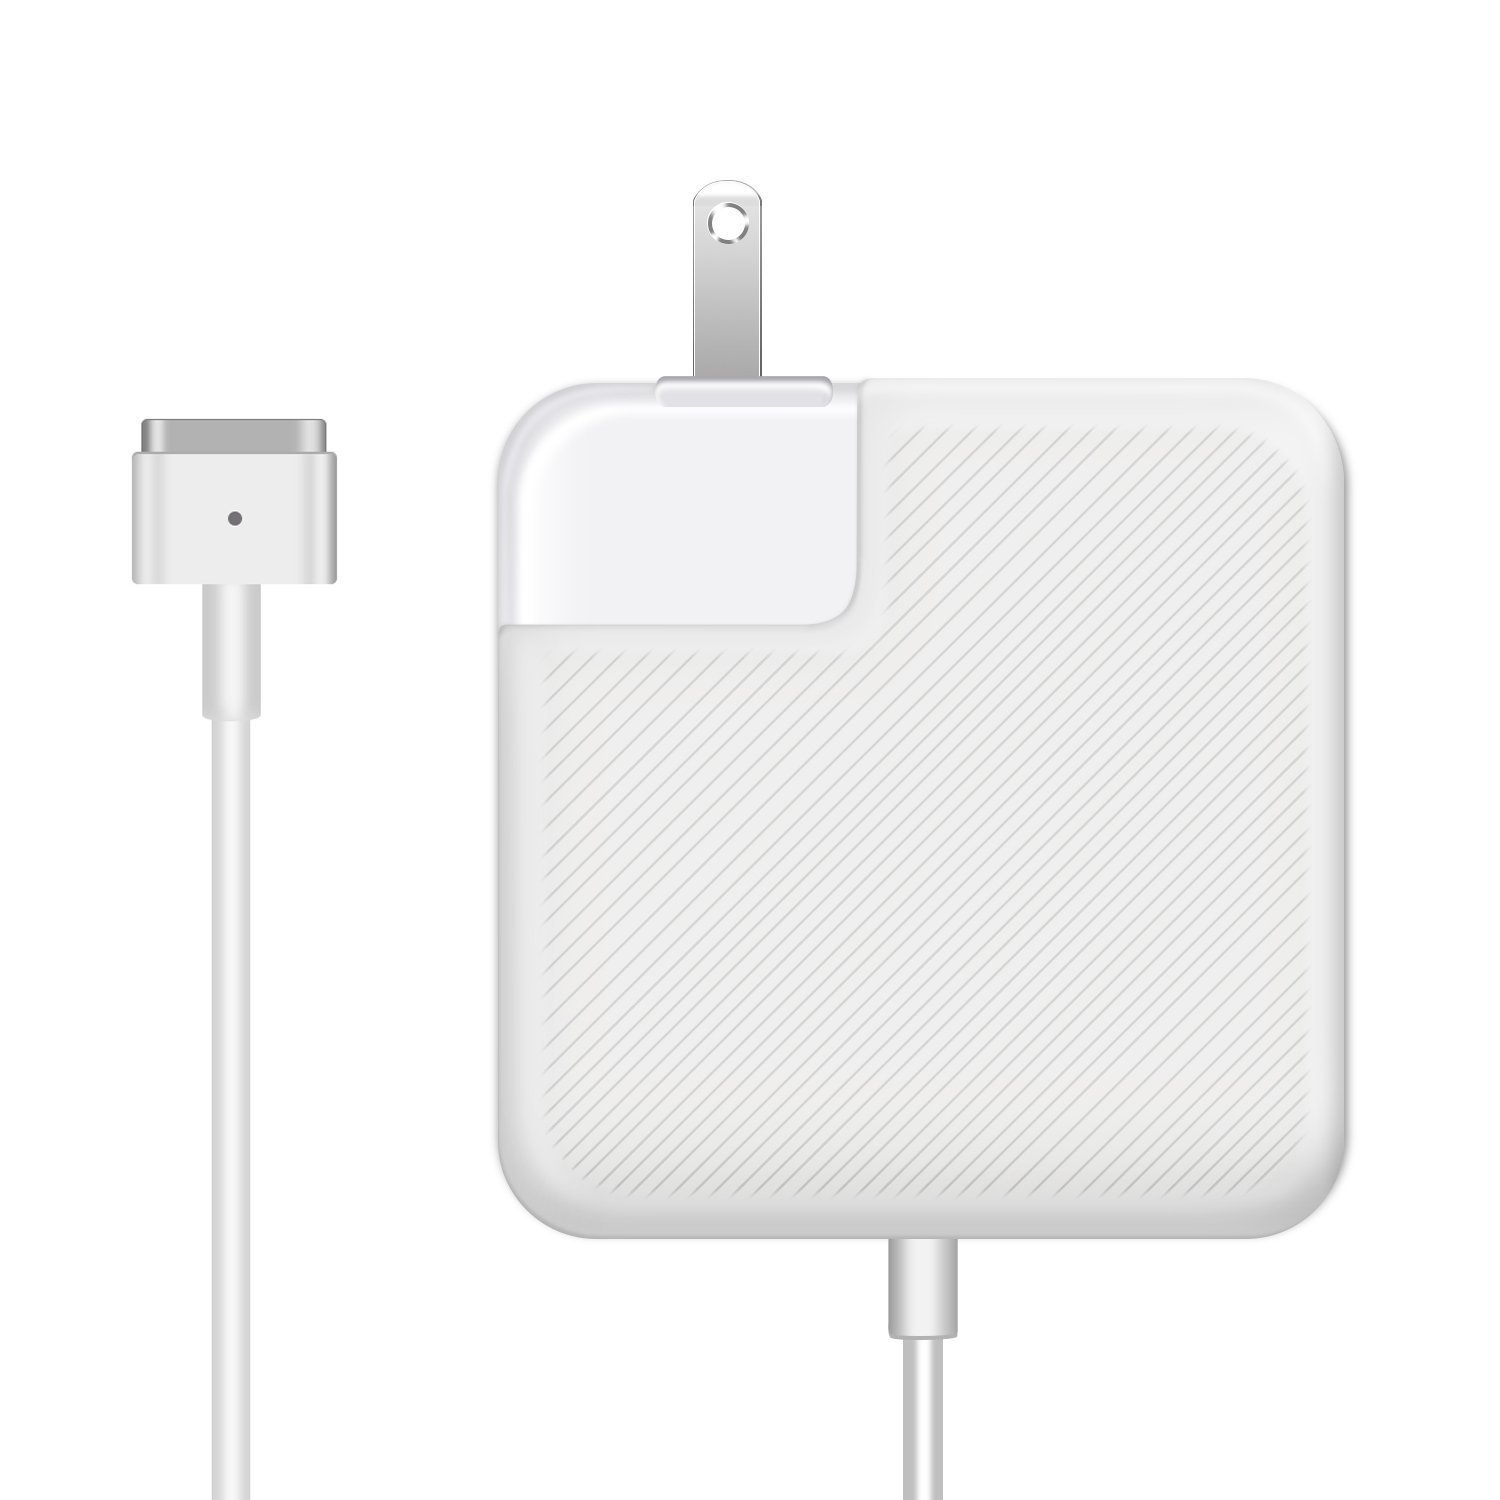 Macbook Air Charger, Ac 45w Magsafe 2 Connector Power Adapter Charger for MacBook Air 11-inch and 13 inch (For Macbook Air Released after Mid 2012)